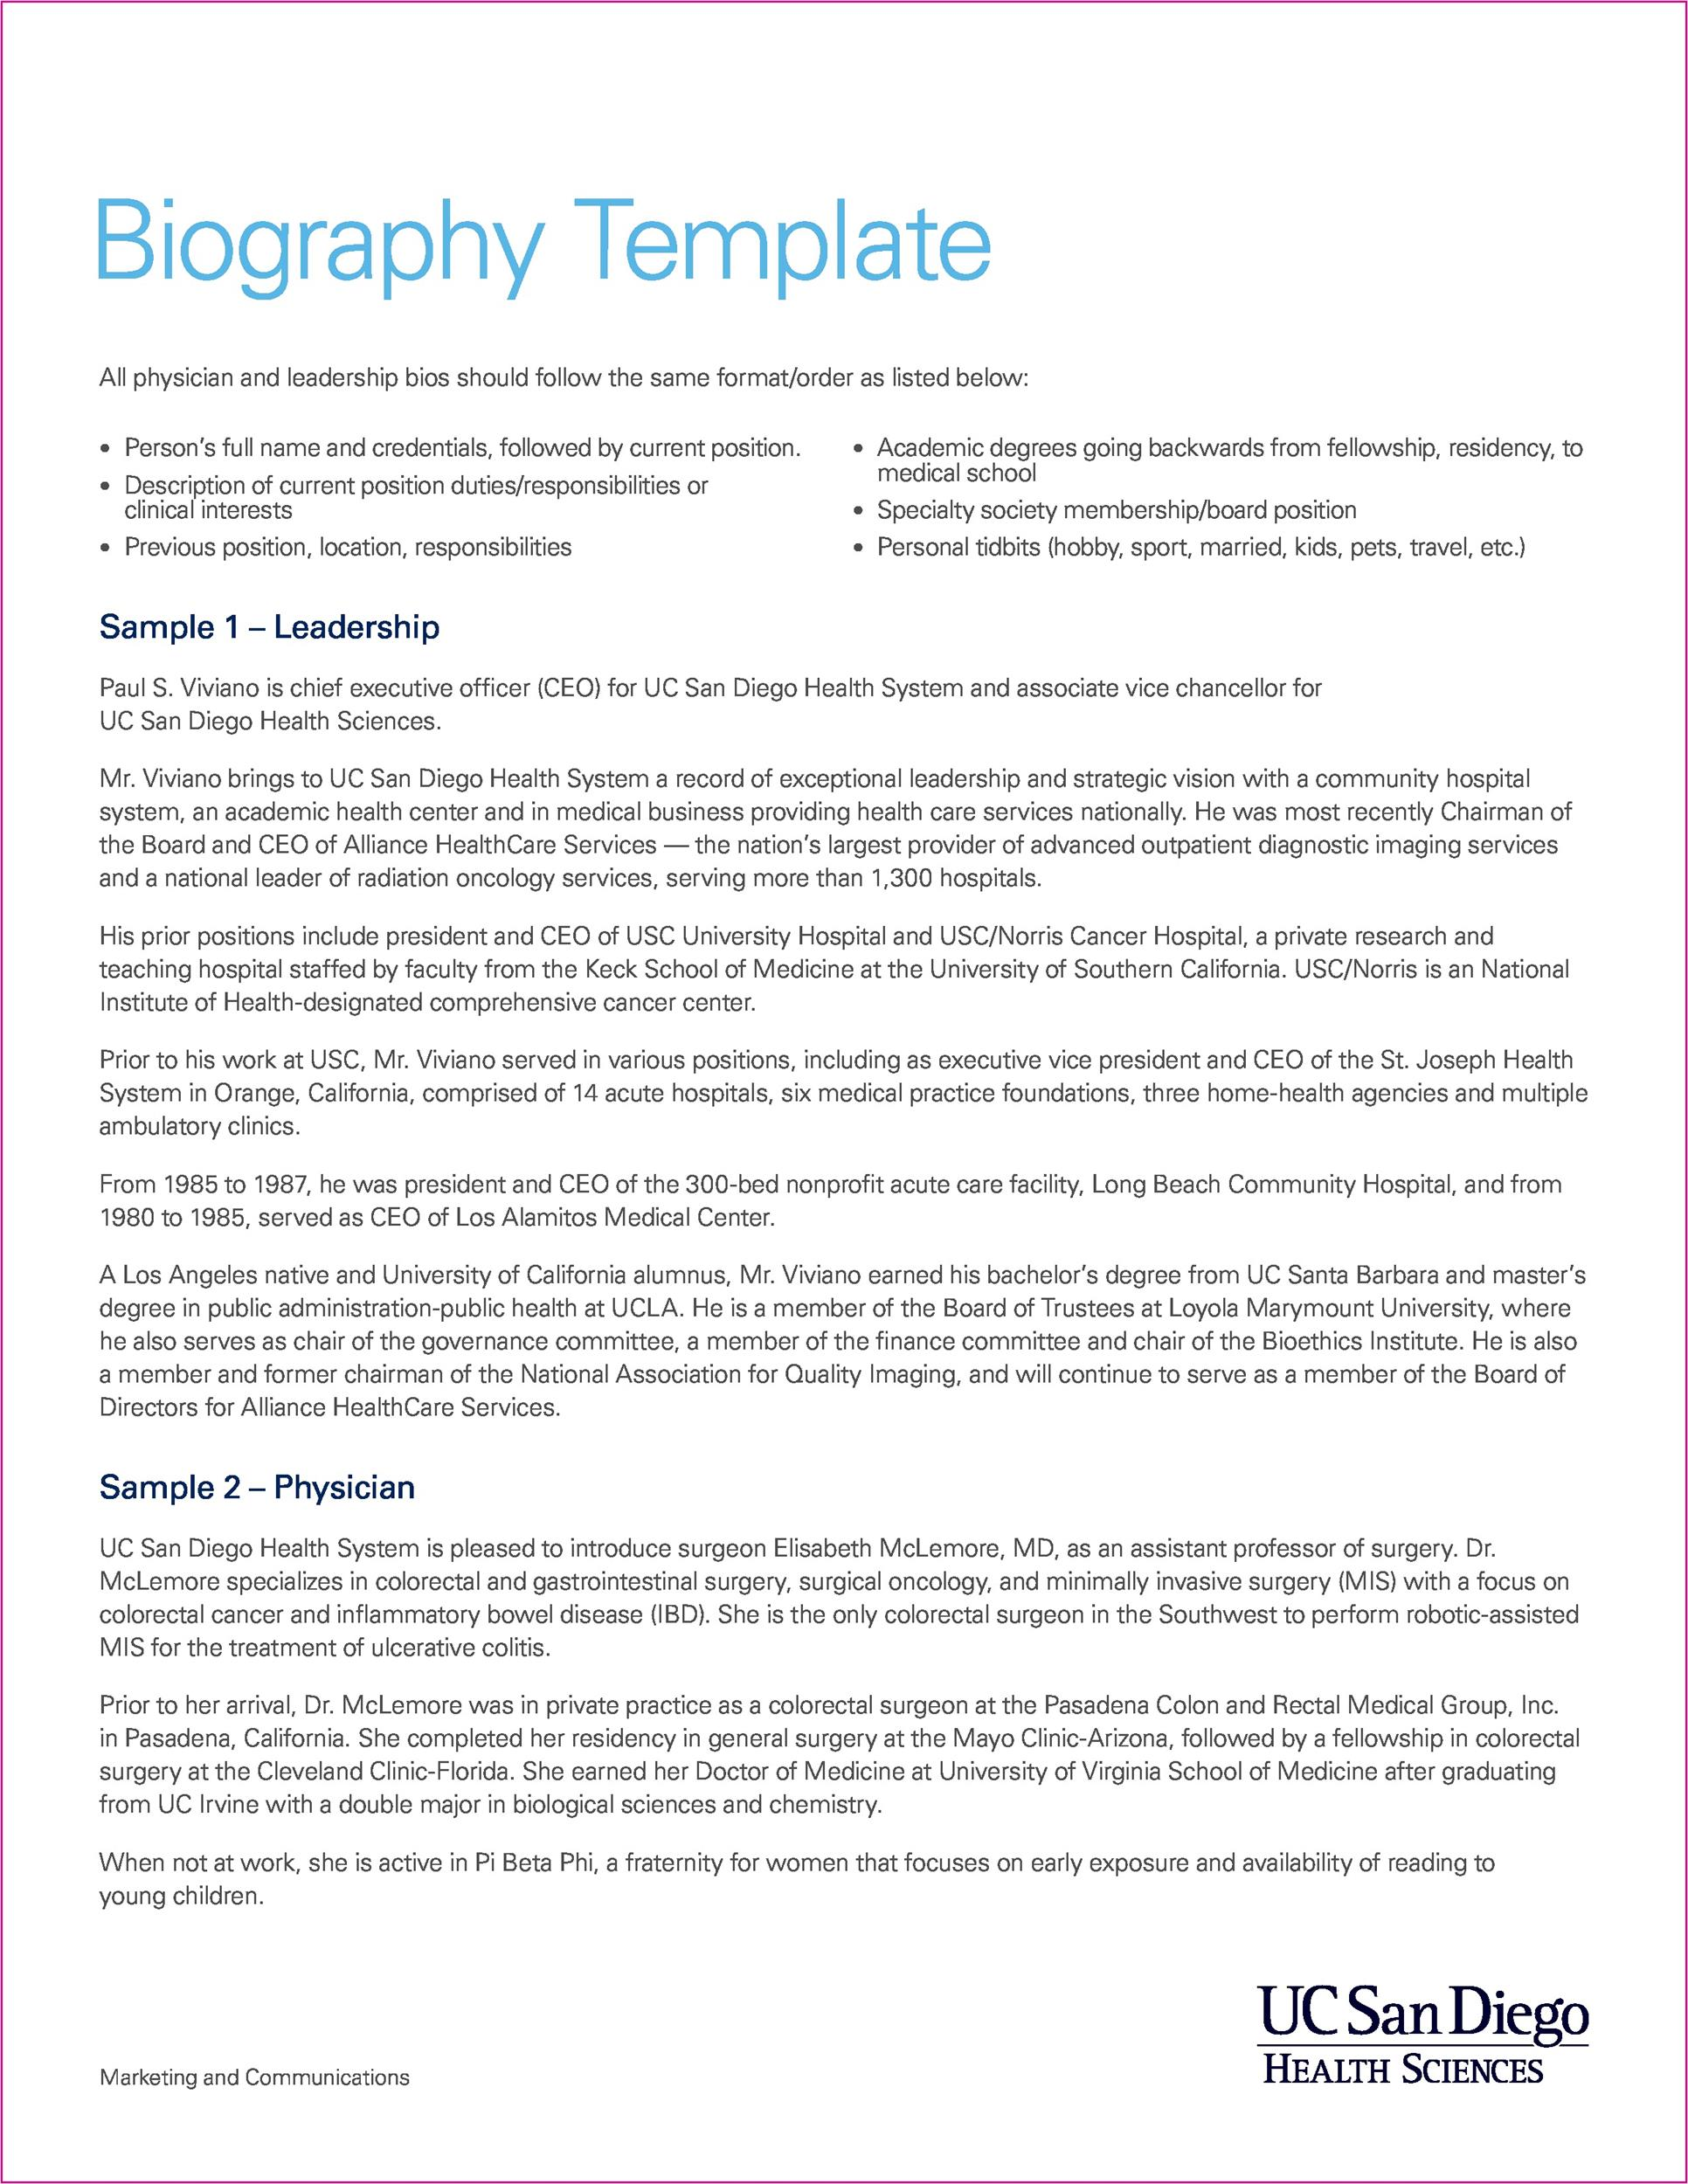 45 Biography Templates & Examples (Personal, Professional)